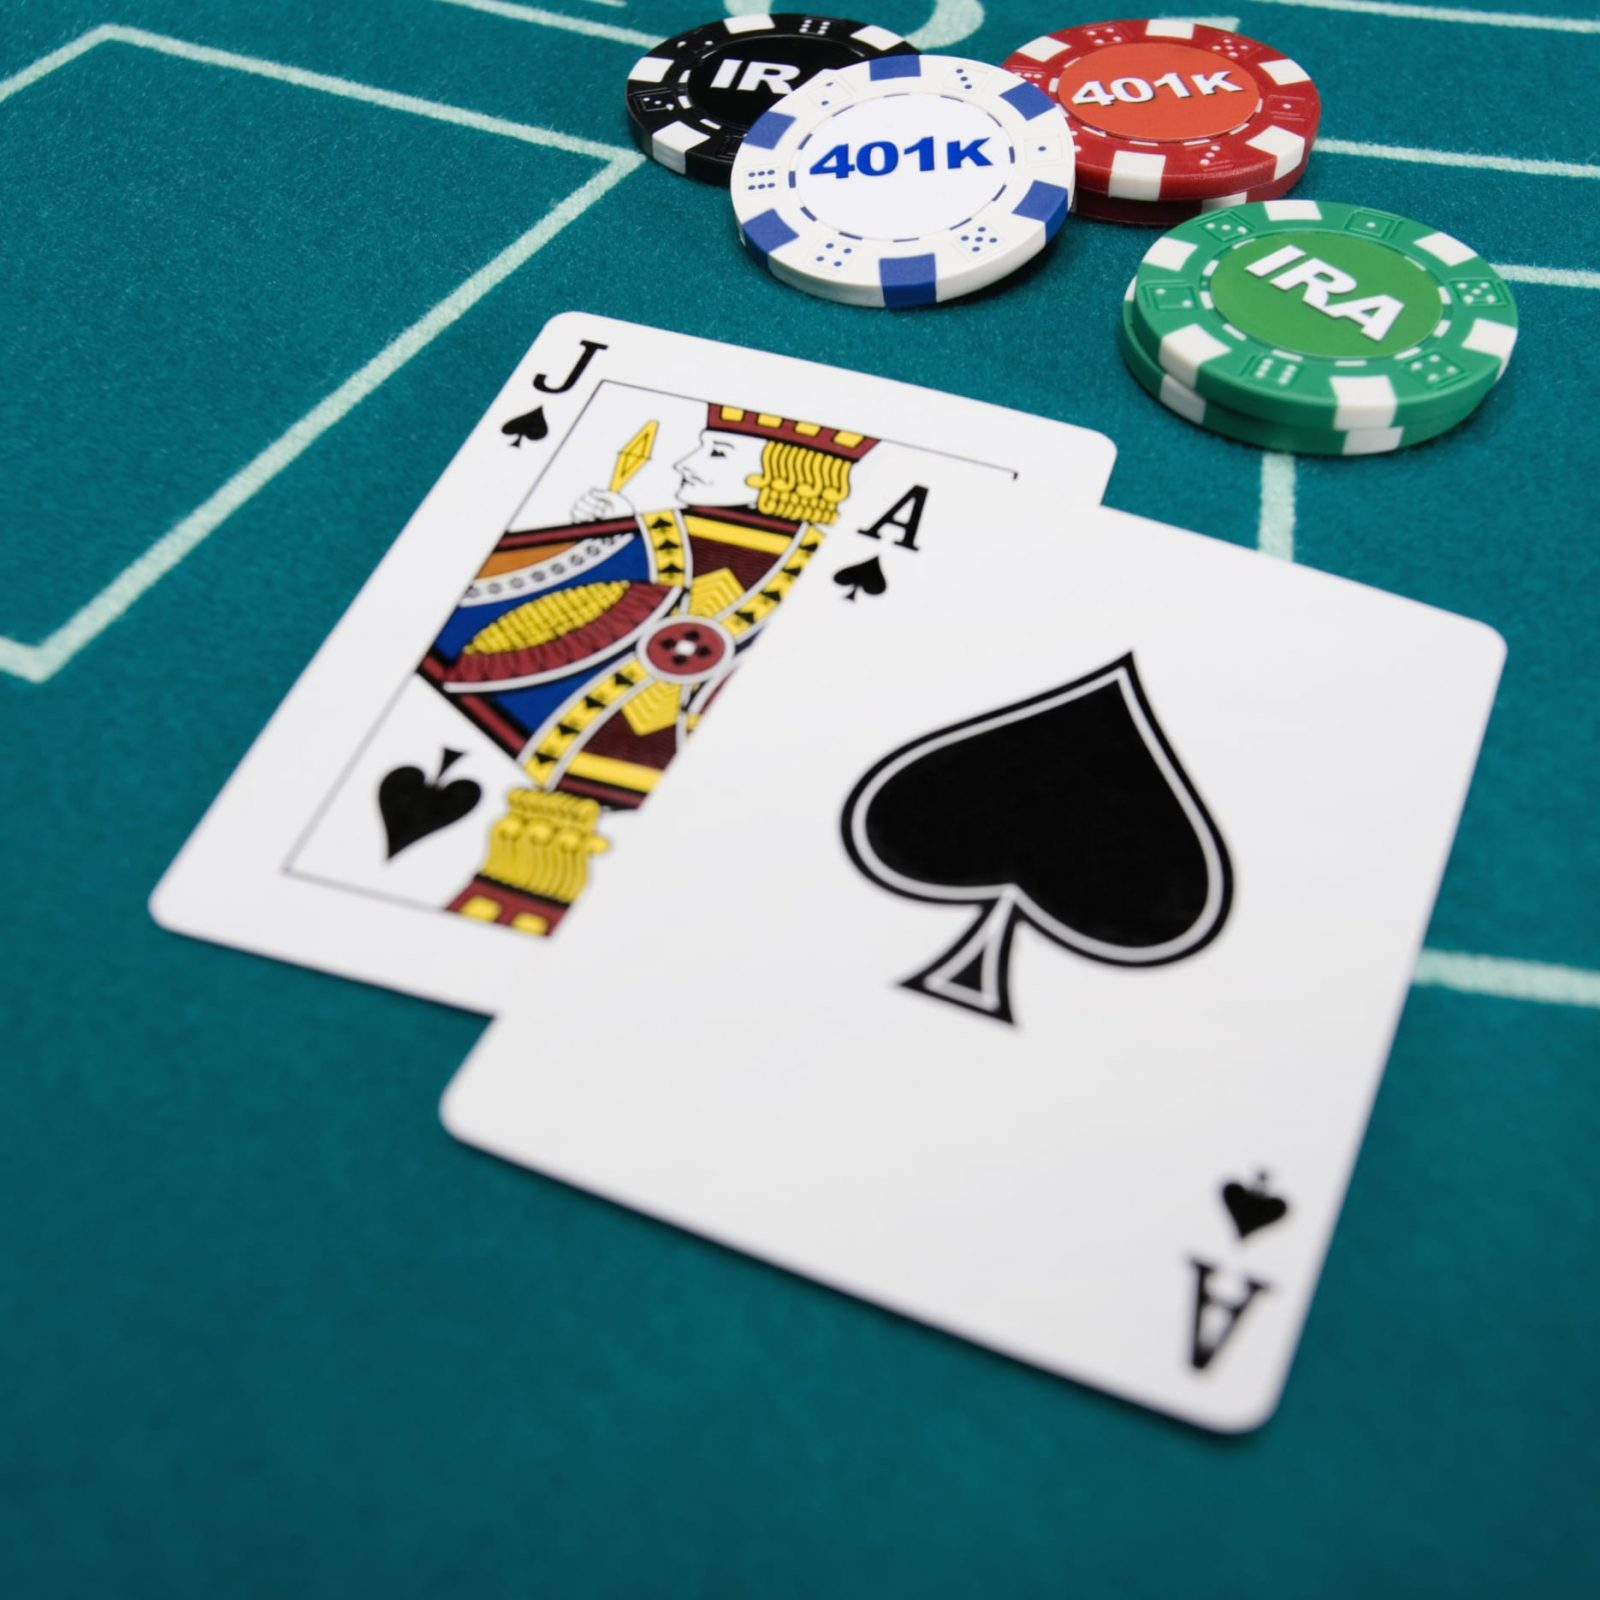 The Rise and Fall of Blackjack - New Theory Magazine